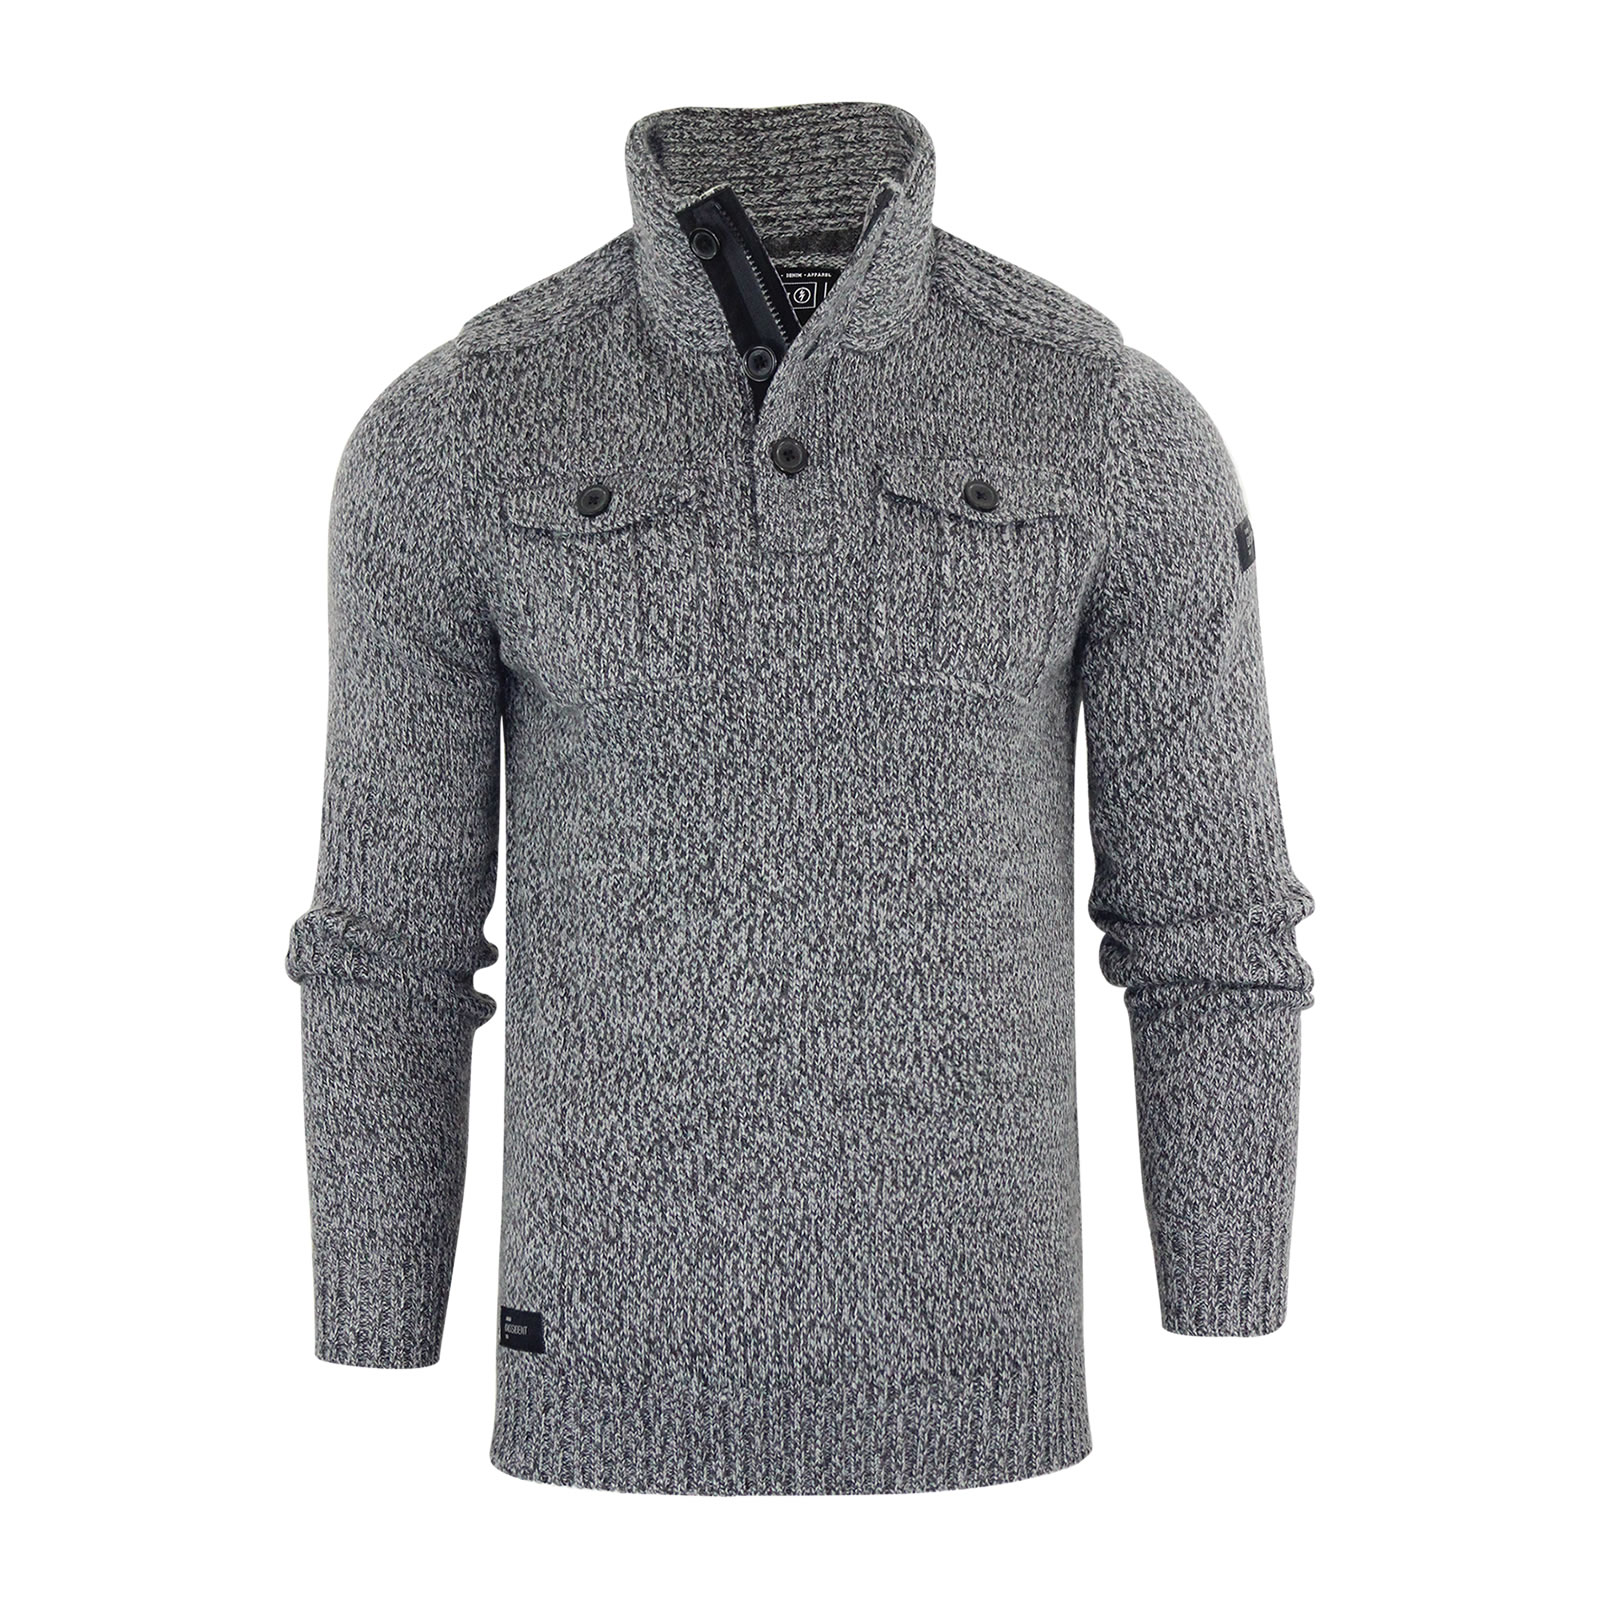 Mens Jumper Dissident Hardy Wool Mix Twist Knitted 1/4 Zip Button ...